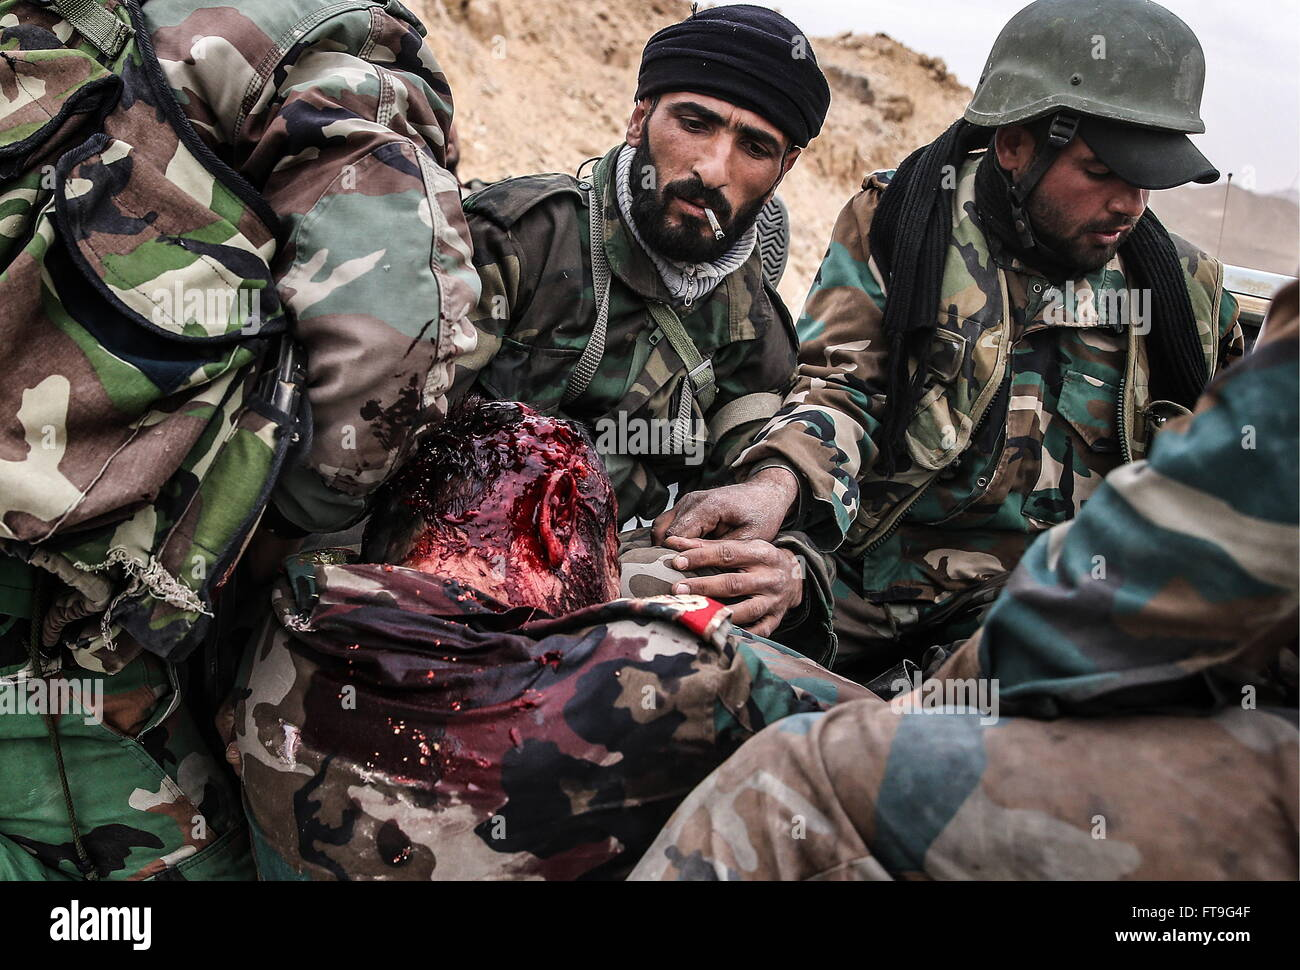 Palmyra, Syria. 26th Mar, 2016. An injured soldier of the Syrian government army at the Fahkr ad-Din al-Maani castle - Stock Image